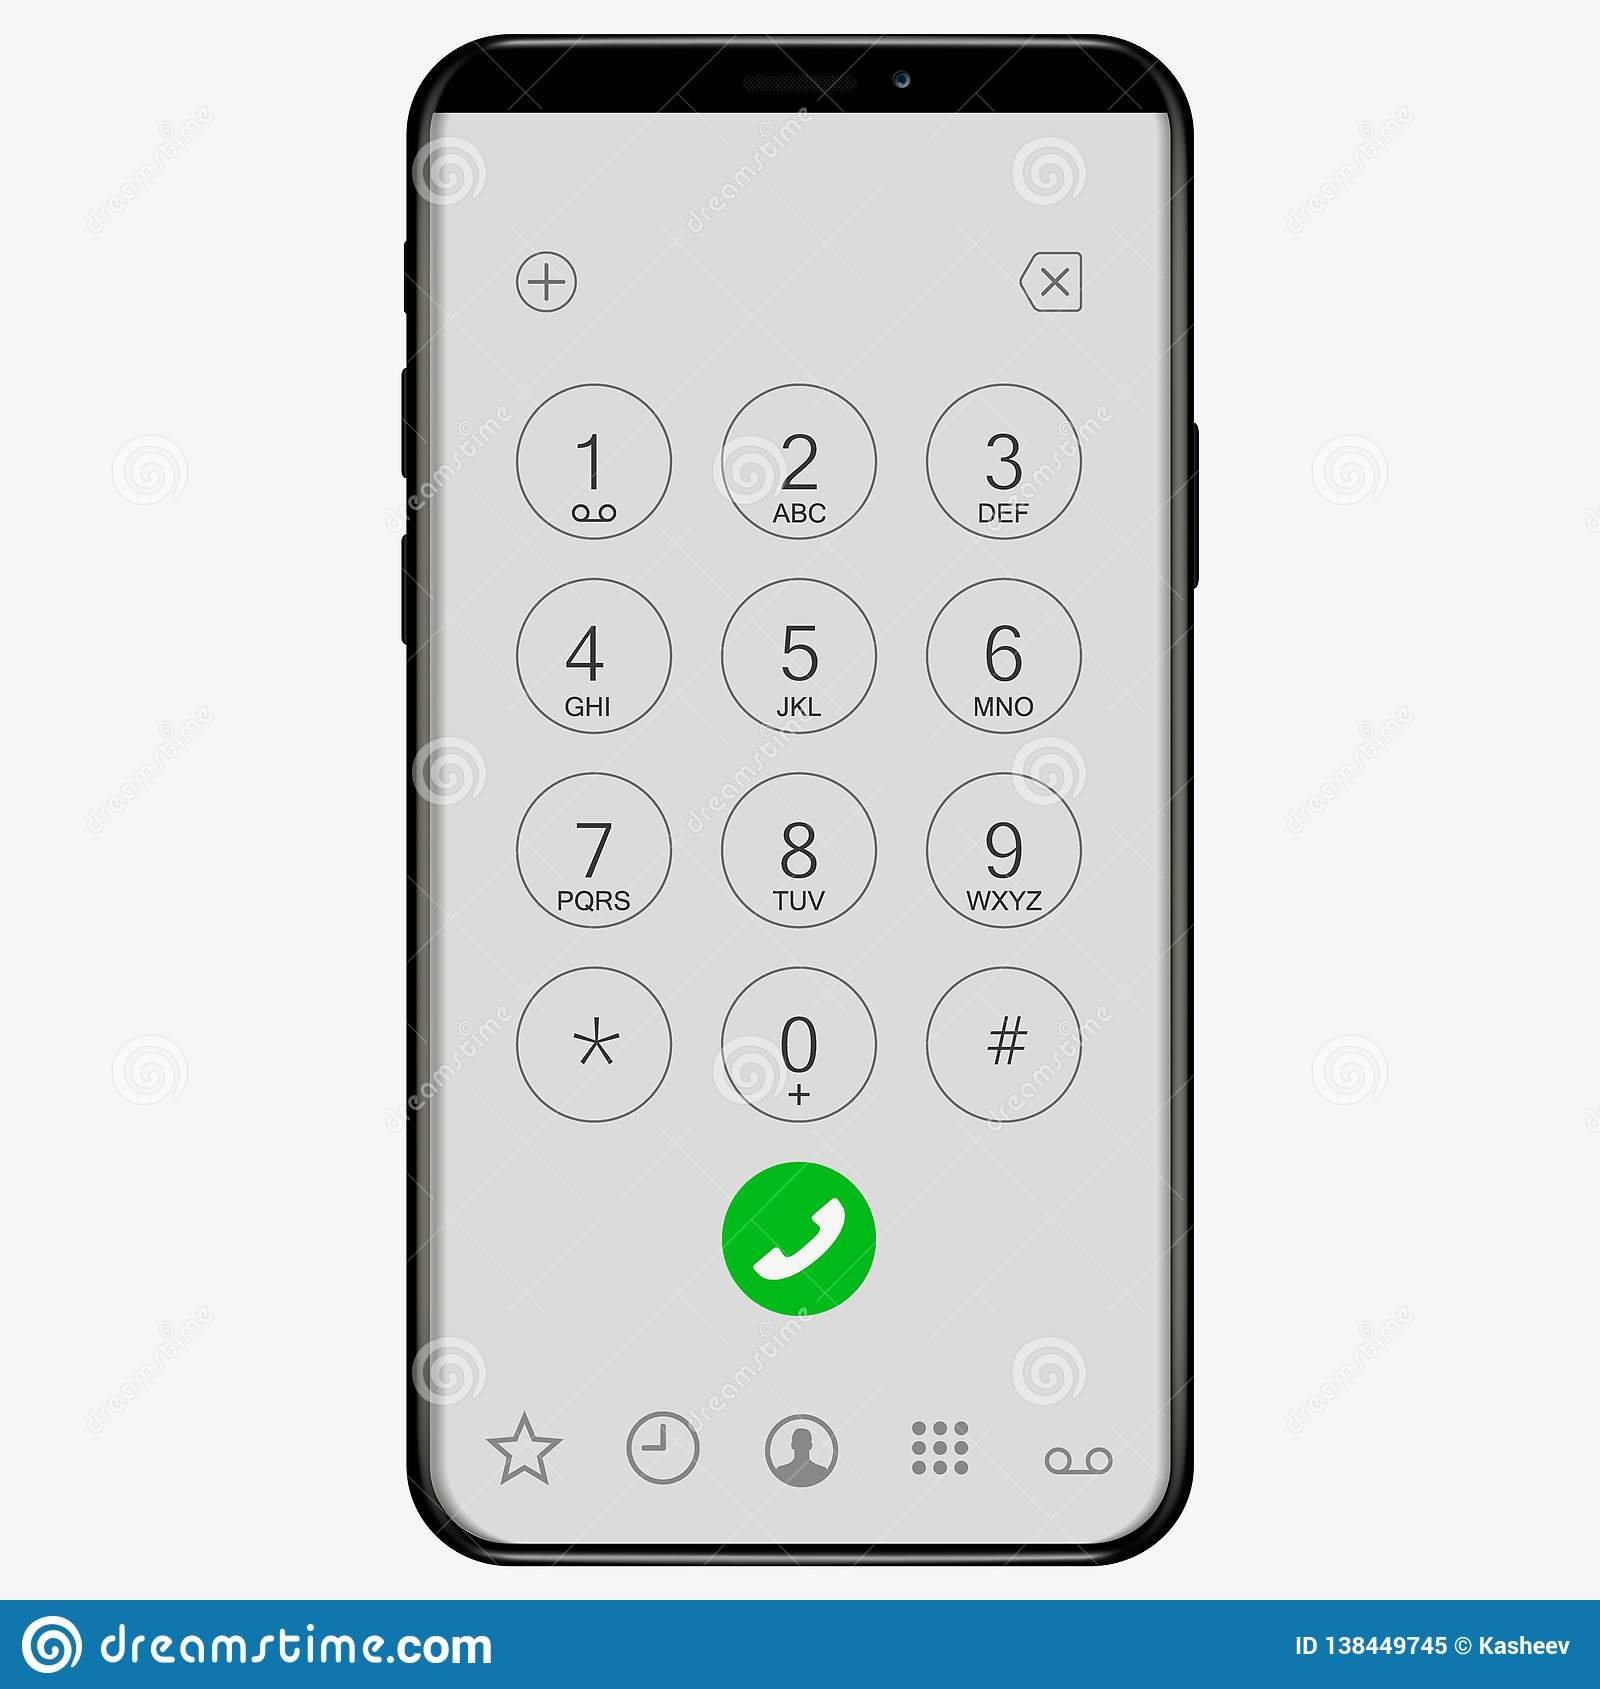 Keypad With Numbers And Letters For Phone. Ios User Interface Keypad For Smartphone. Keyboard